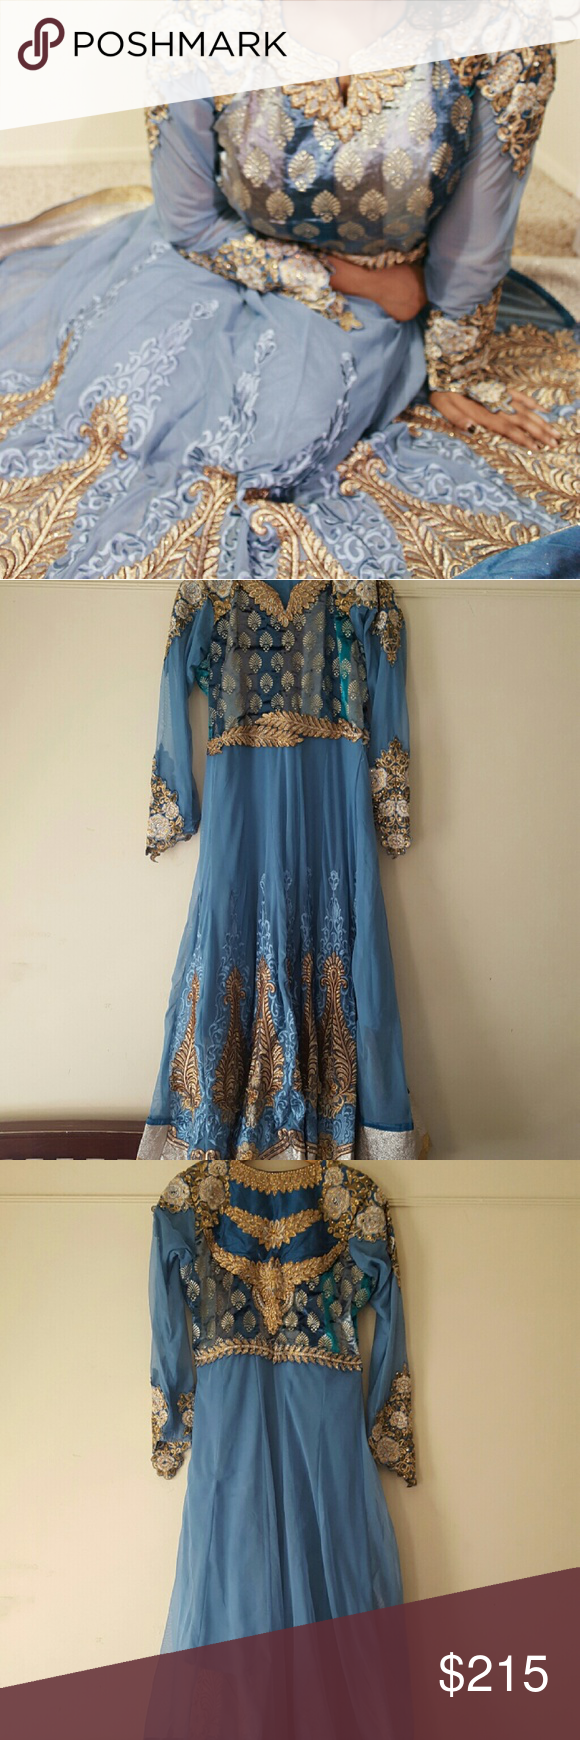 Beautiful eid party salwar kameez gown dress this dress is